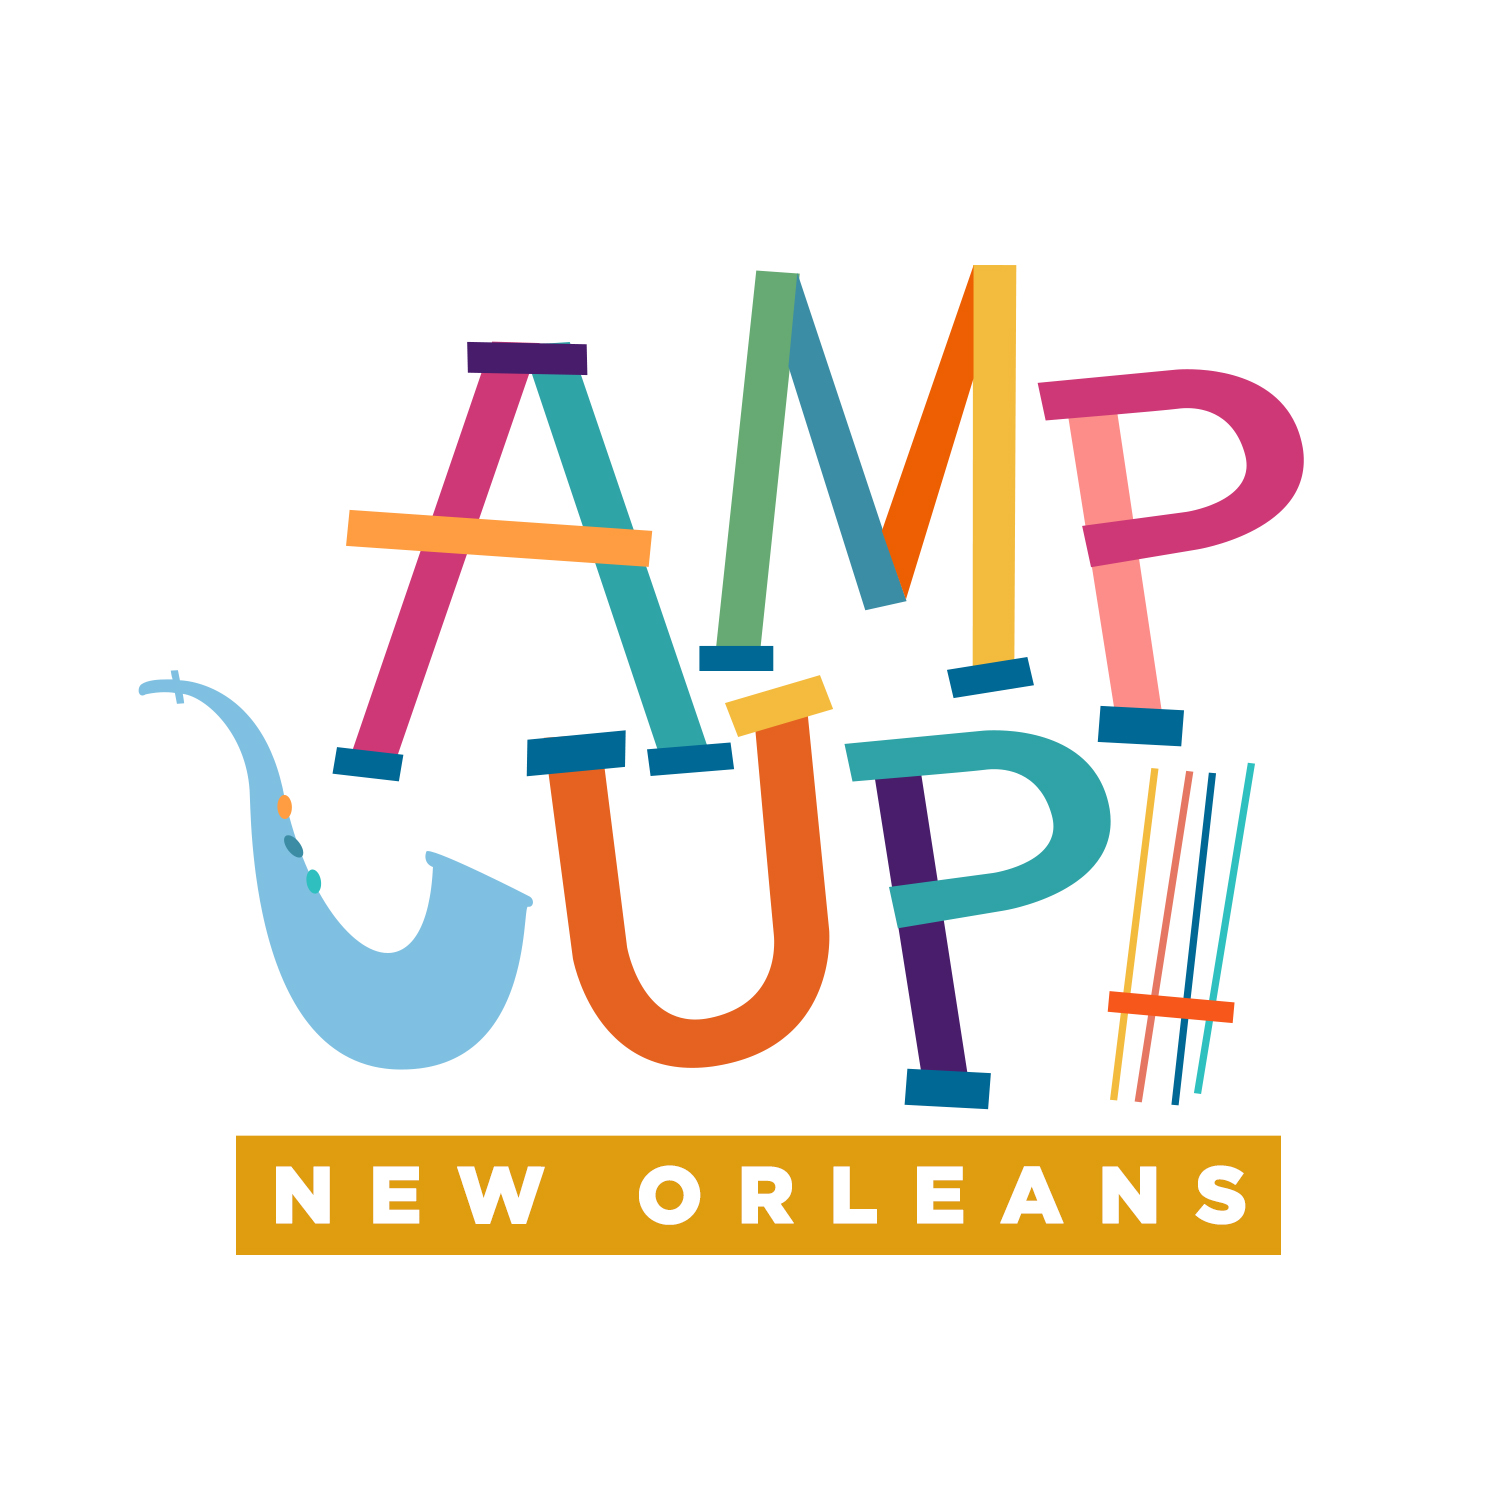 AMP-UP-New-Orleans-logoArtboard 10 copy 2.jpg